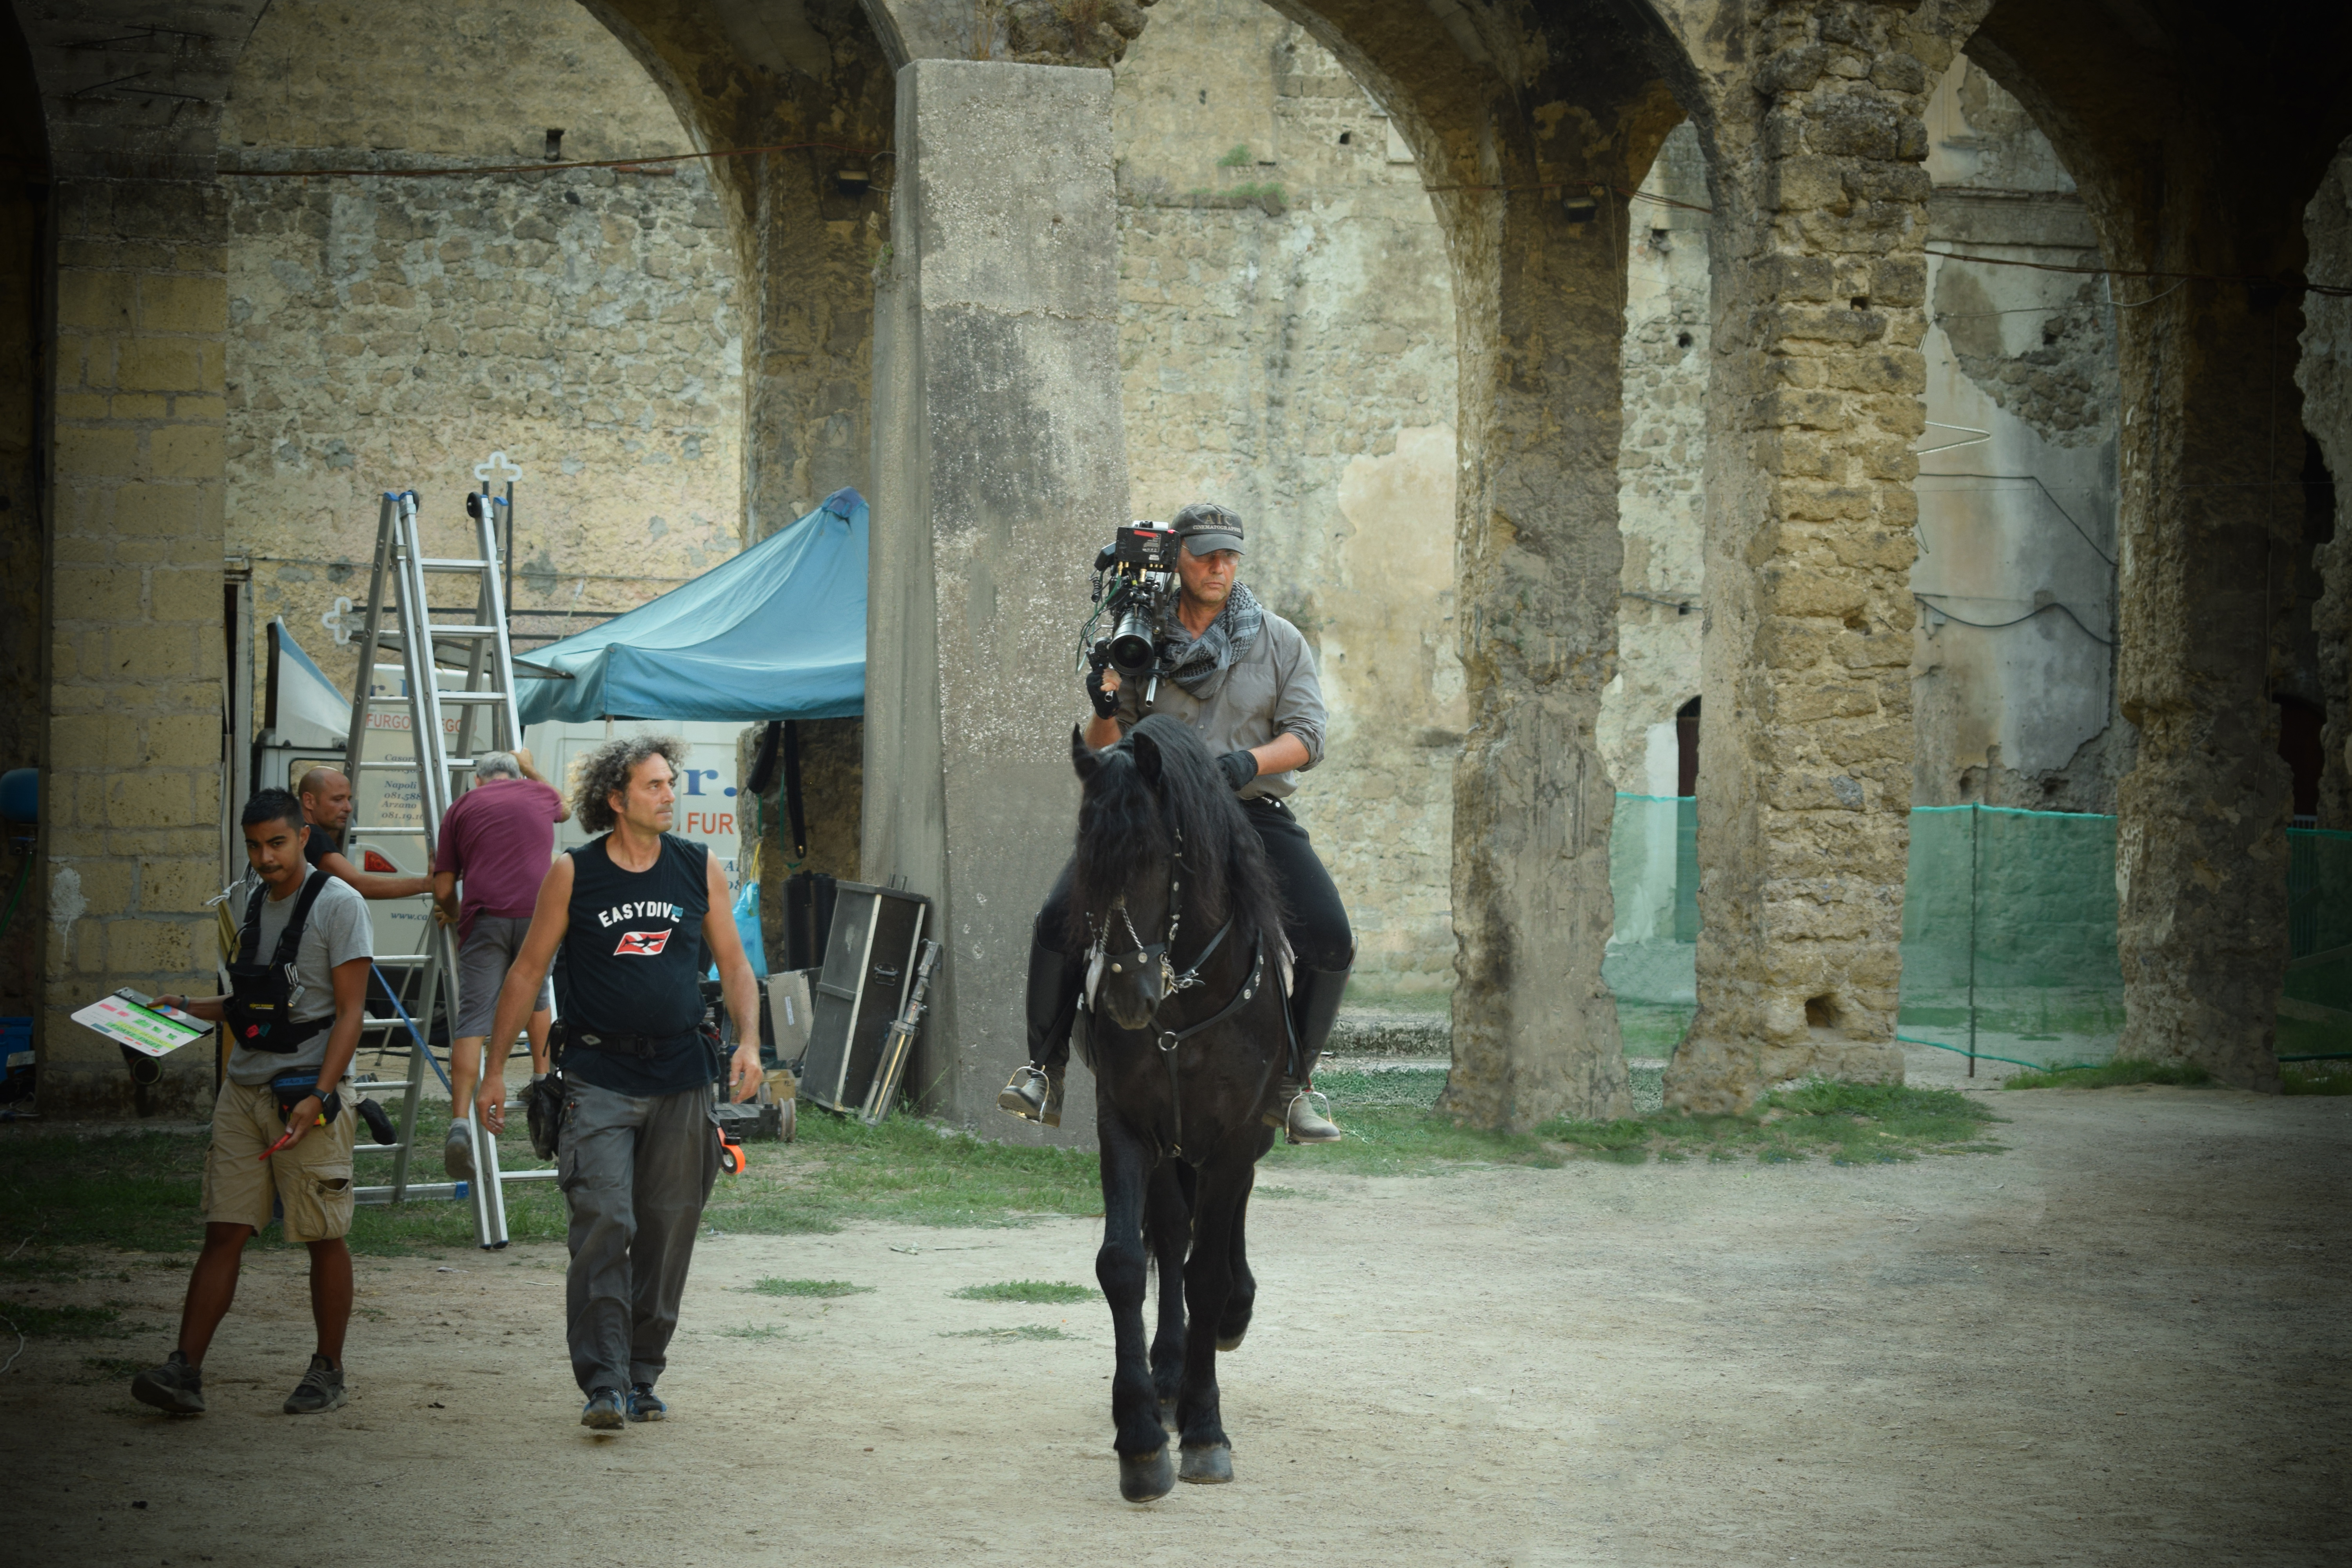 FP filming off horse